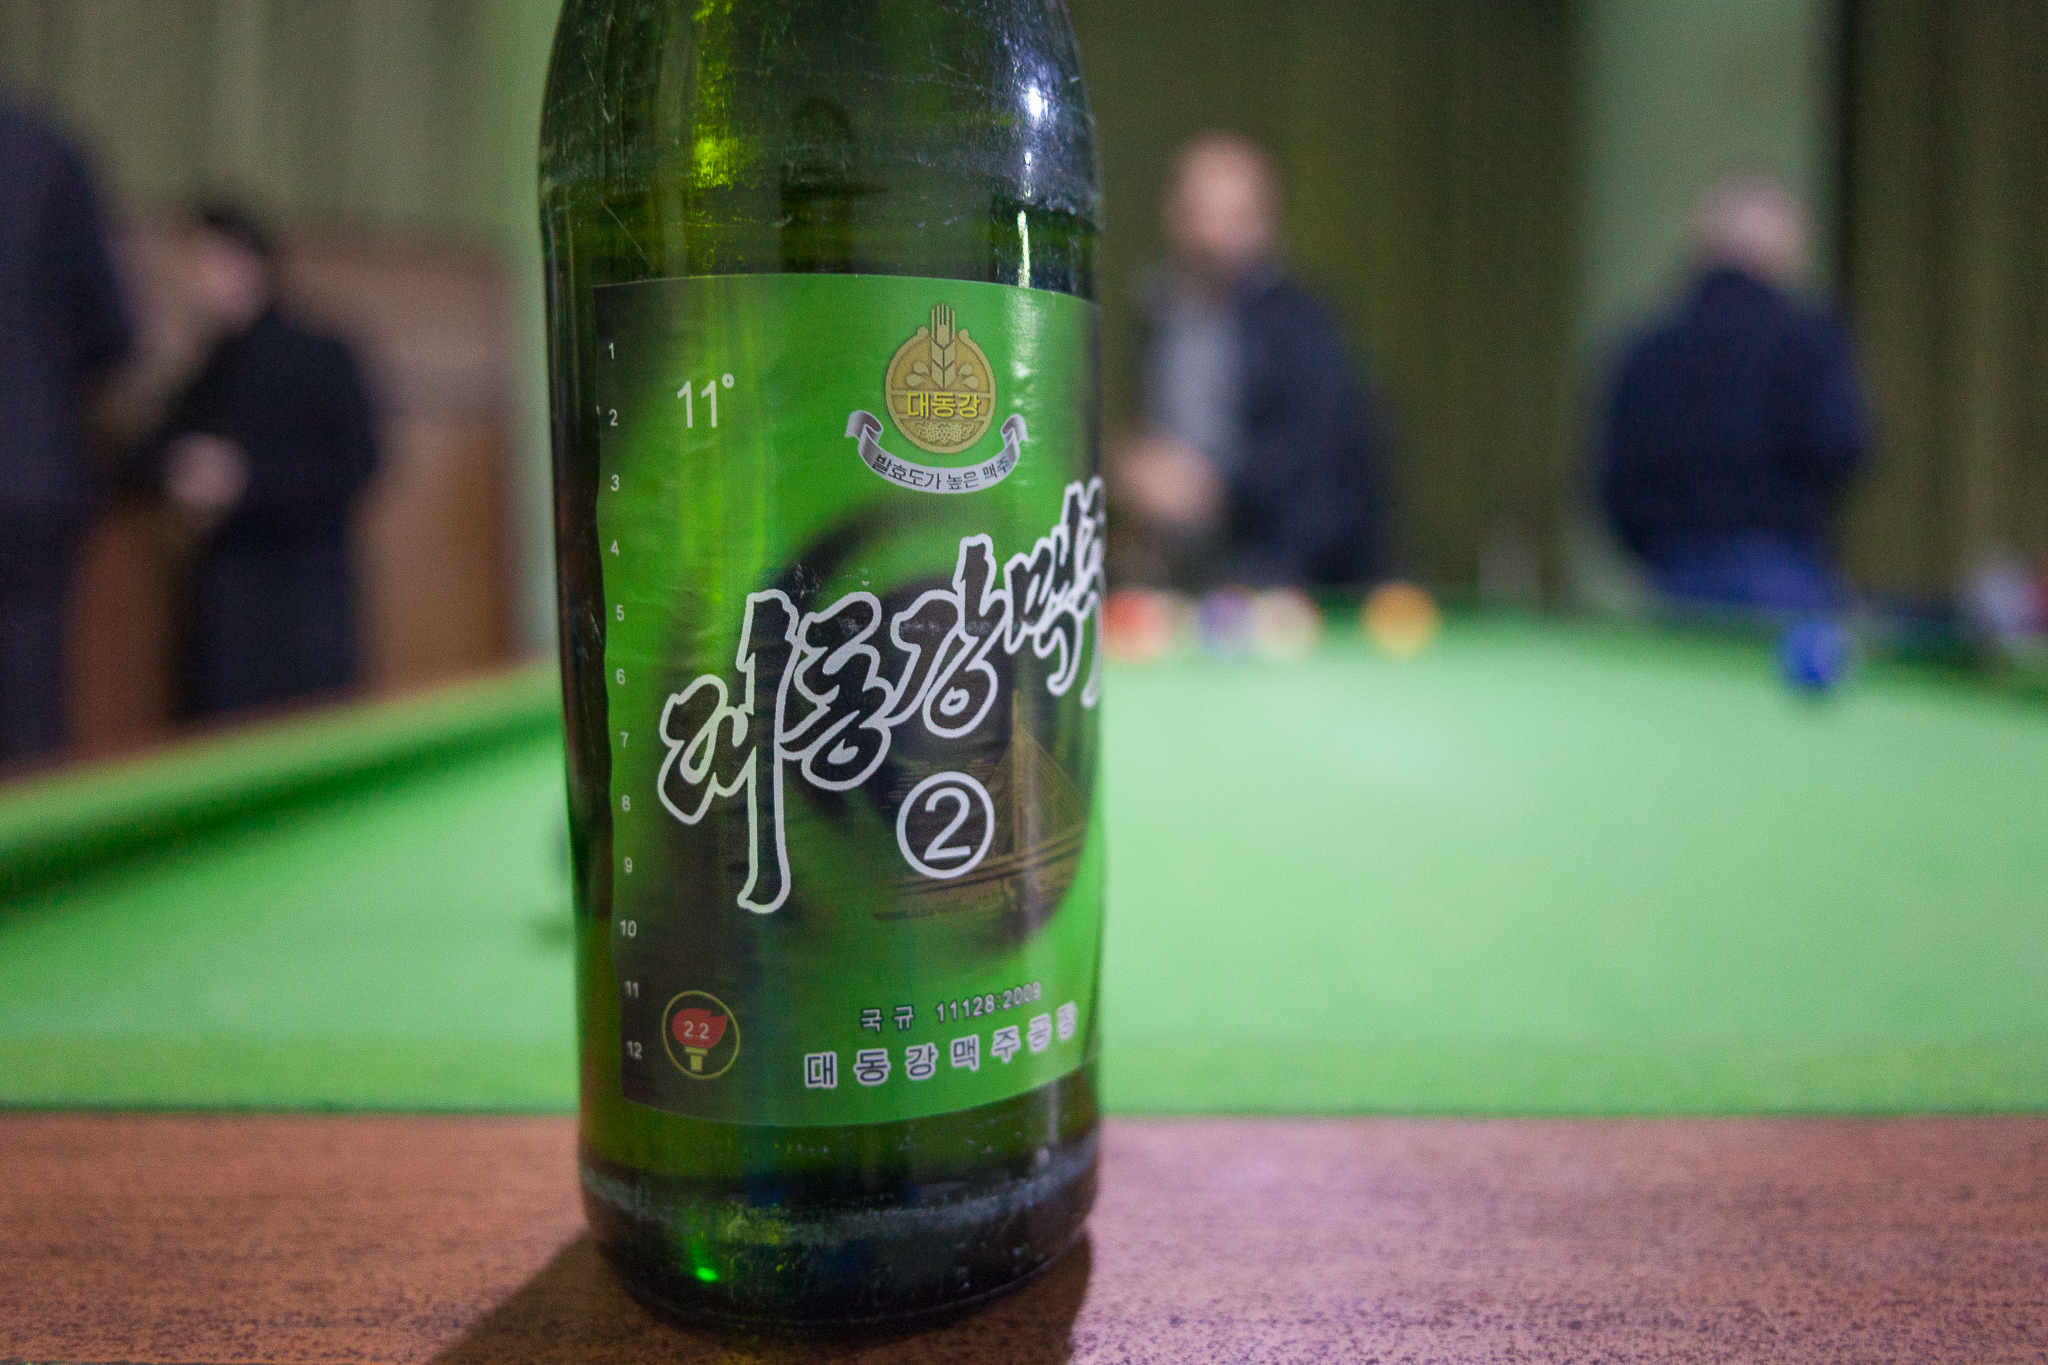 Man in Japan Faces Charges After Selling $3 North Korean Beer for